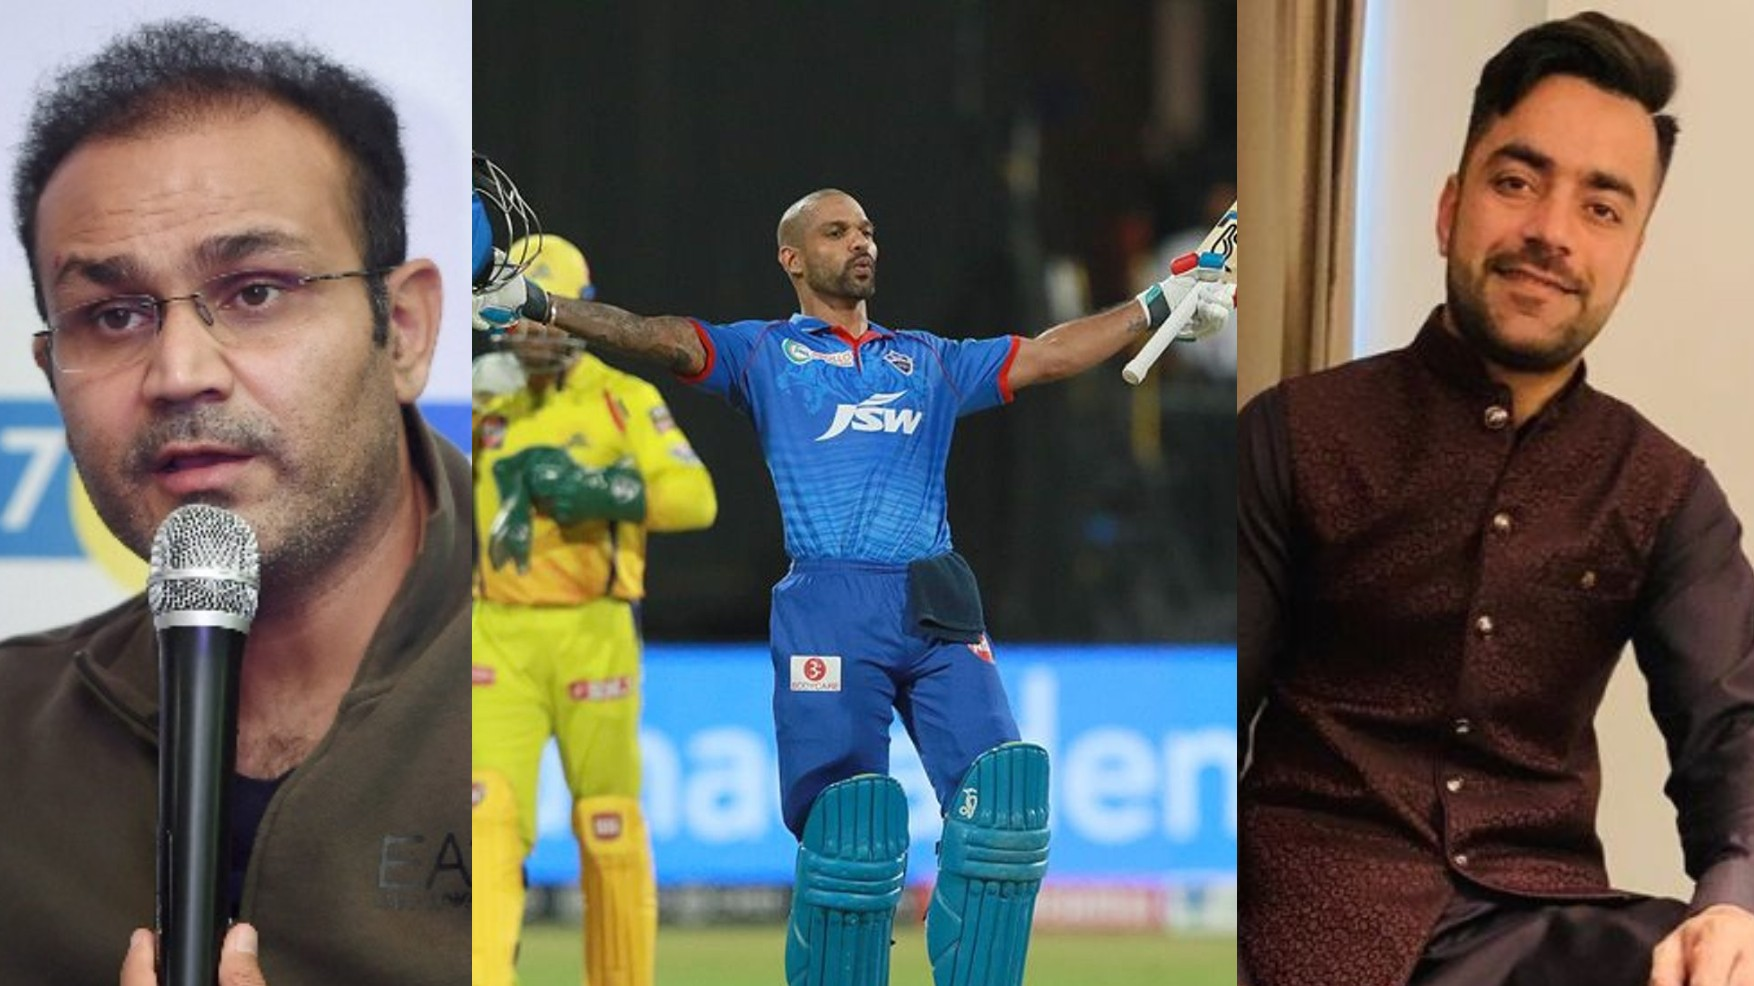 IPL 2020: Shikhar Dhawan hits maiden IPL ton; Cricket fraternity lauds DC's 5-wicket over CSK